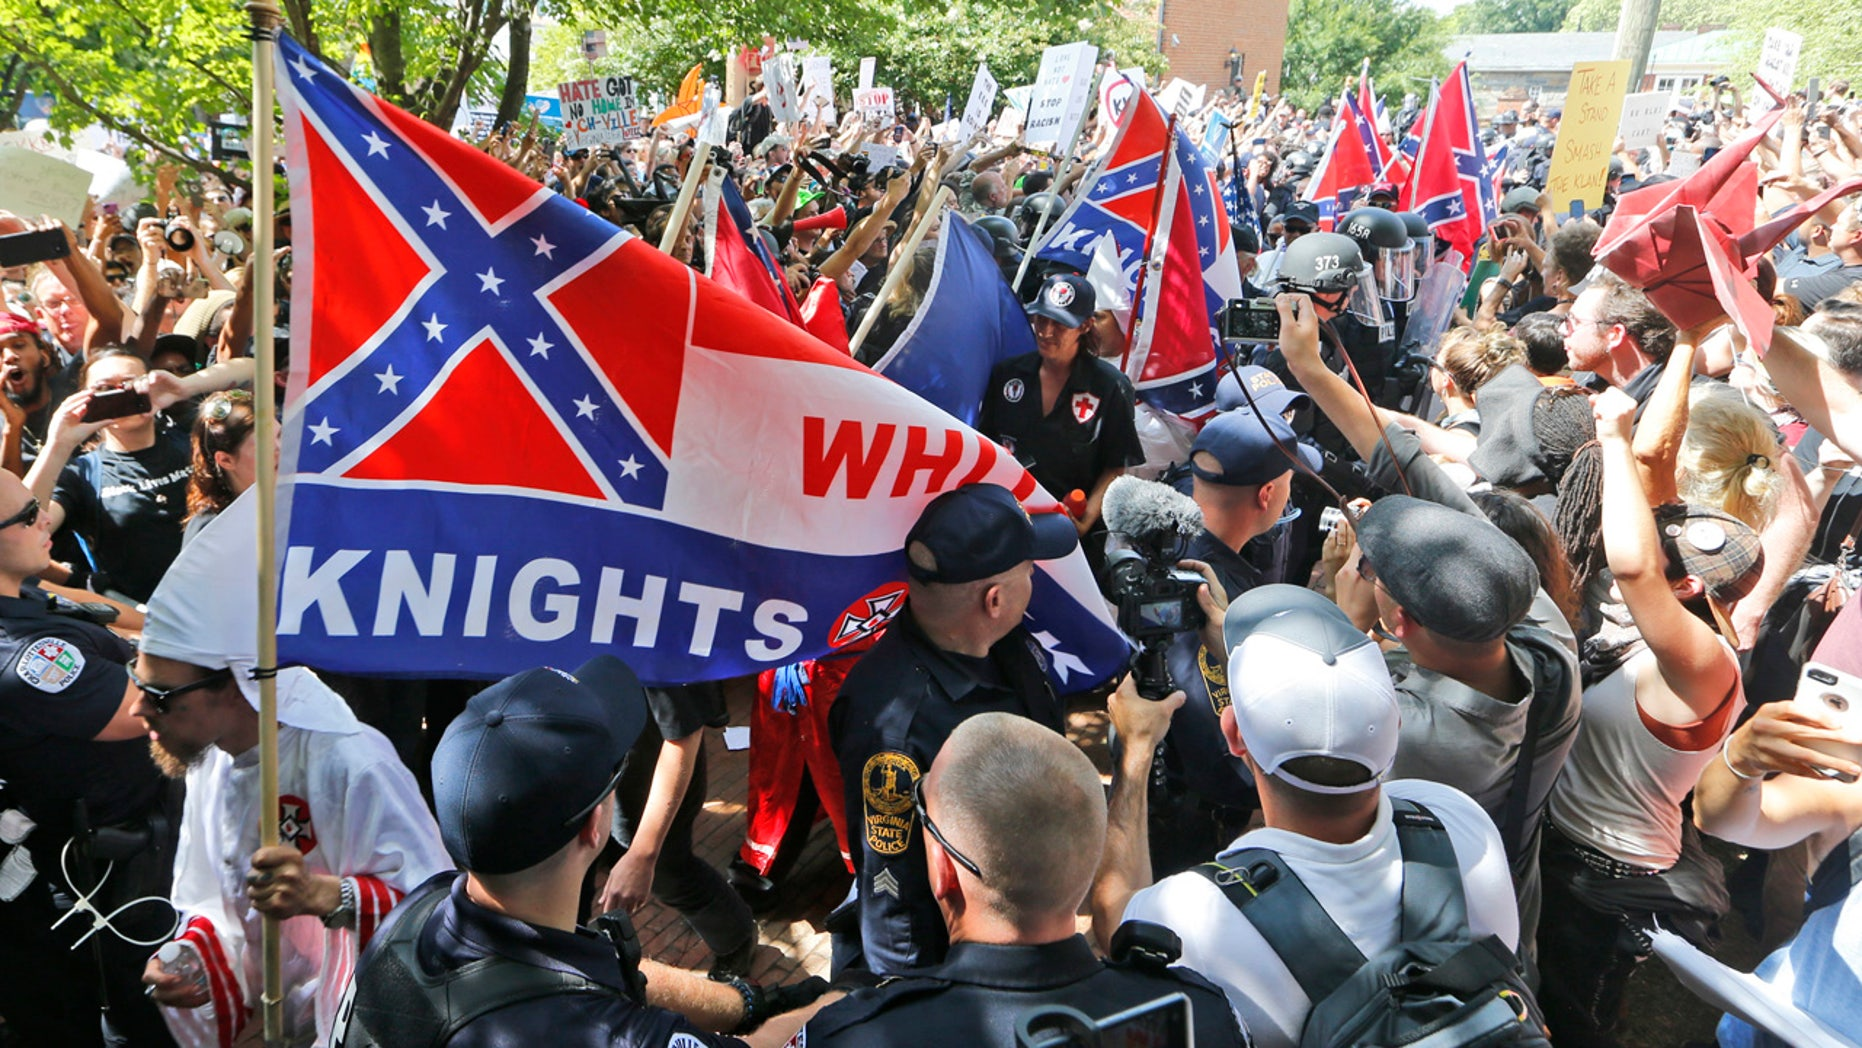 This July 8, 2017 photo shows members of the KKK escorted by police past a large group of protesters during a KKK rally in Charlottesville, Va.